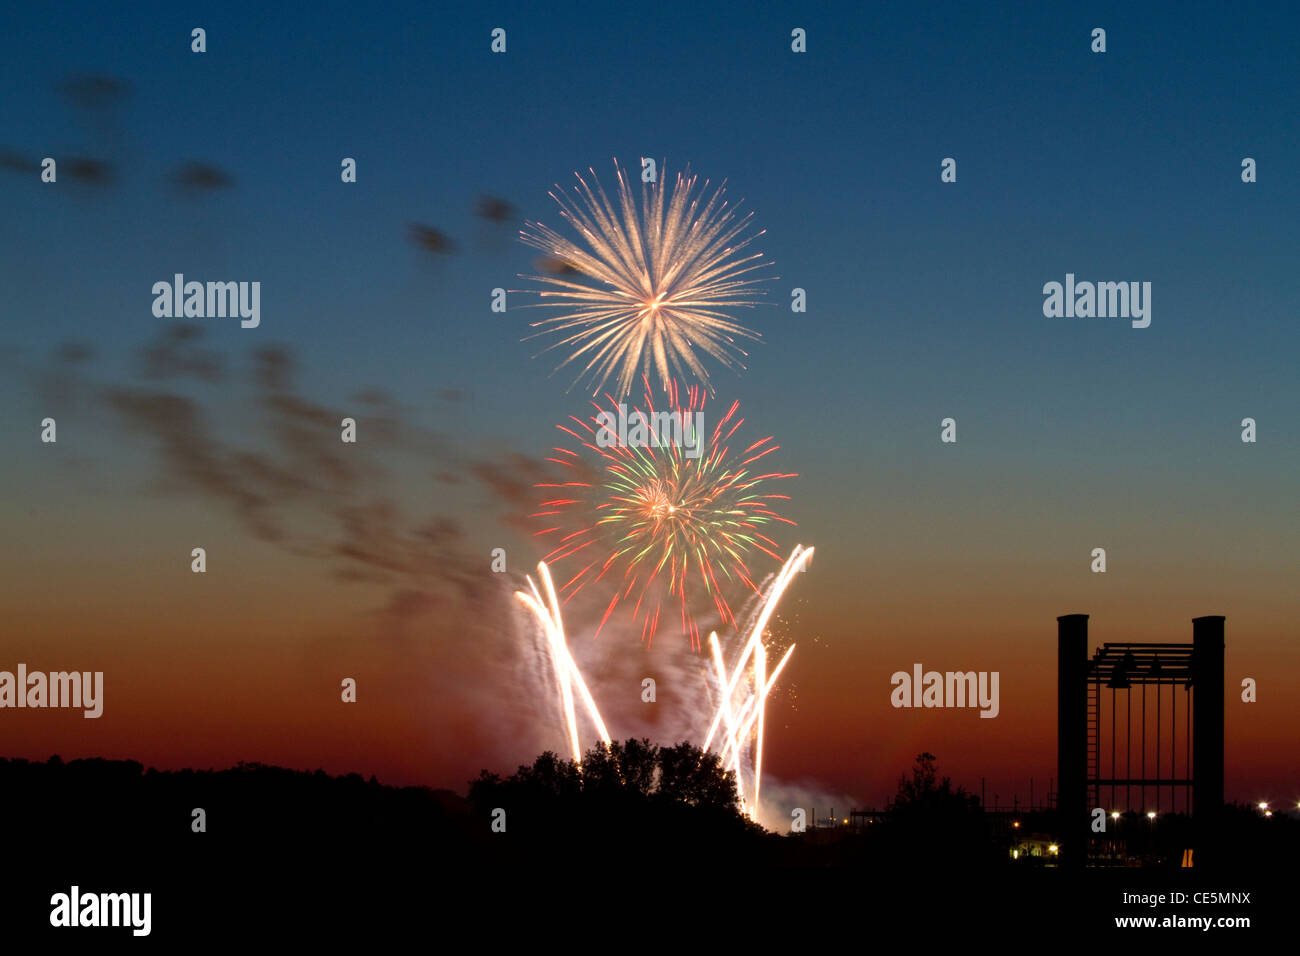 Fourth of July fireworks display in Boise, Idaho, USA. - Stock Image